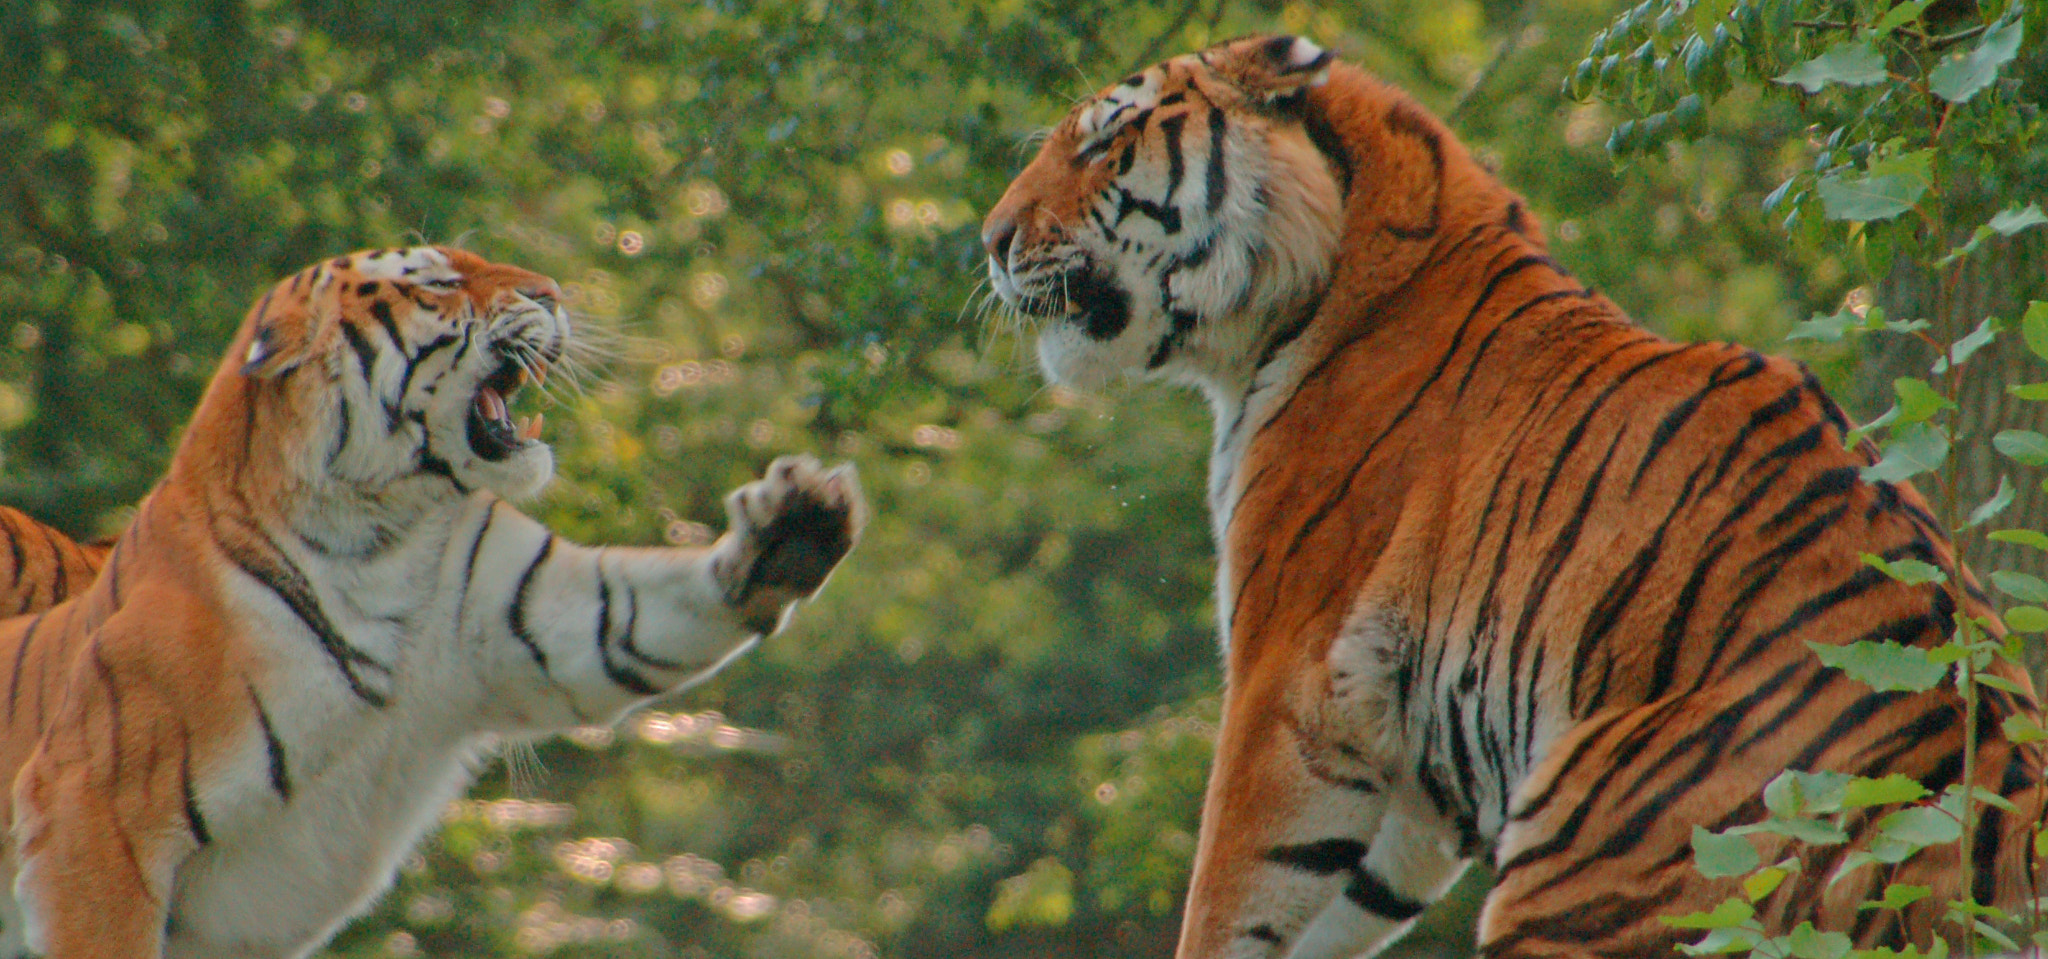 Photograph Tigers by Kate Walker on 500px